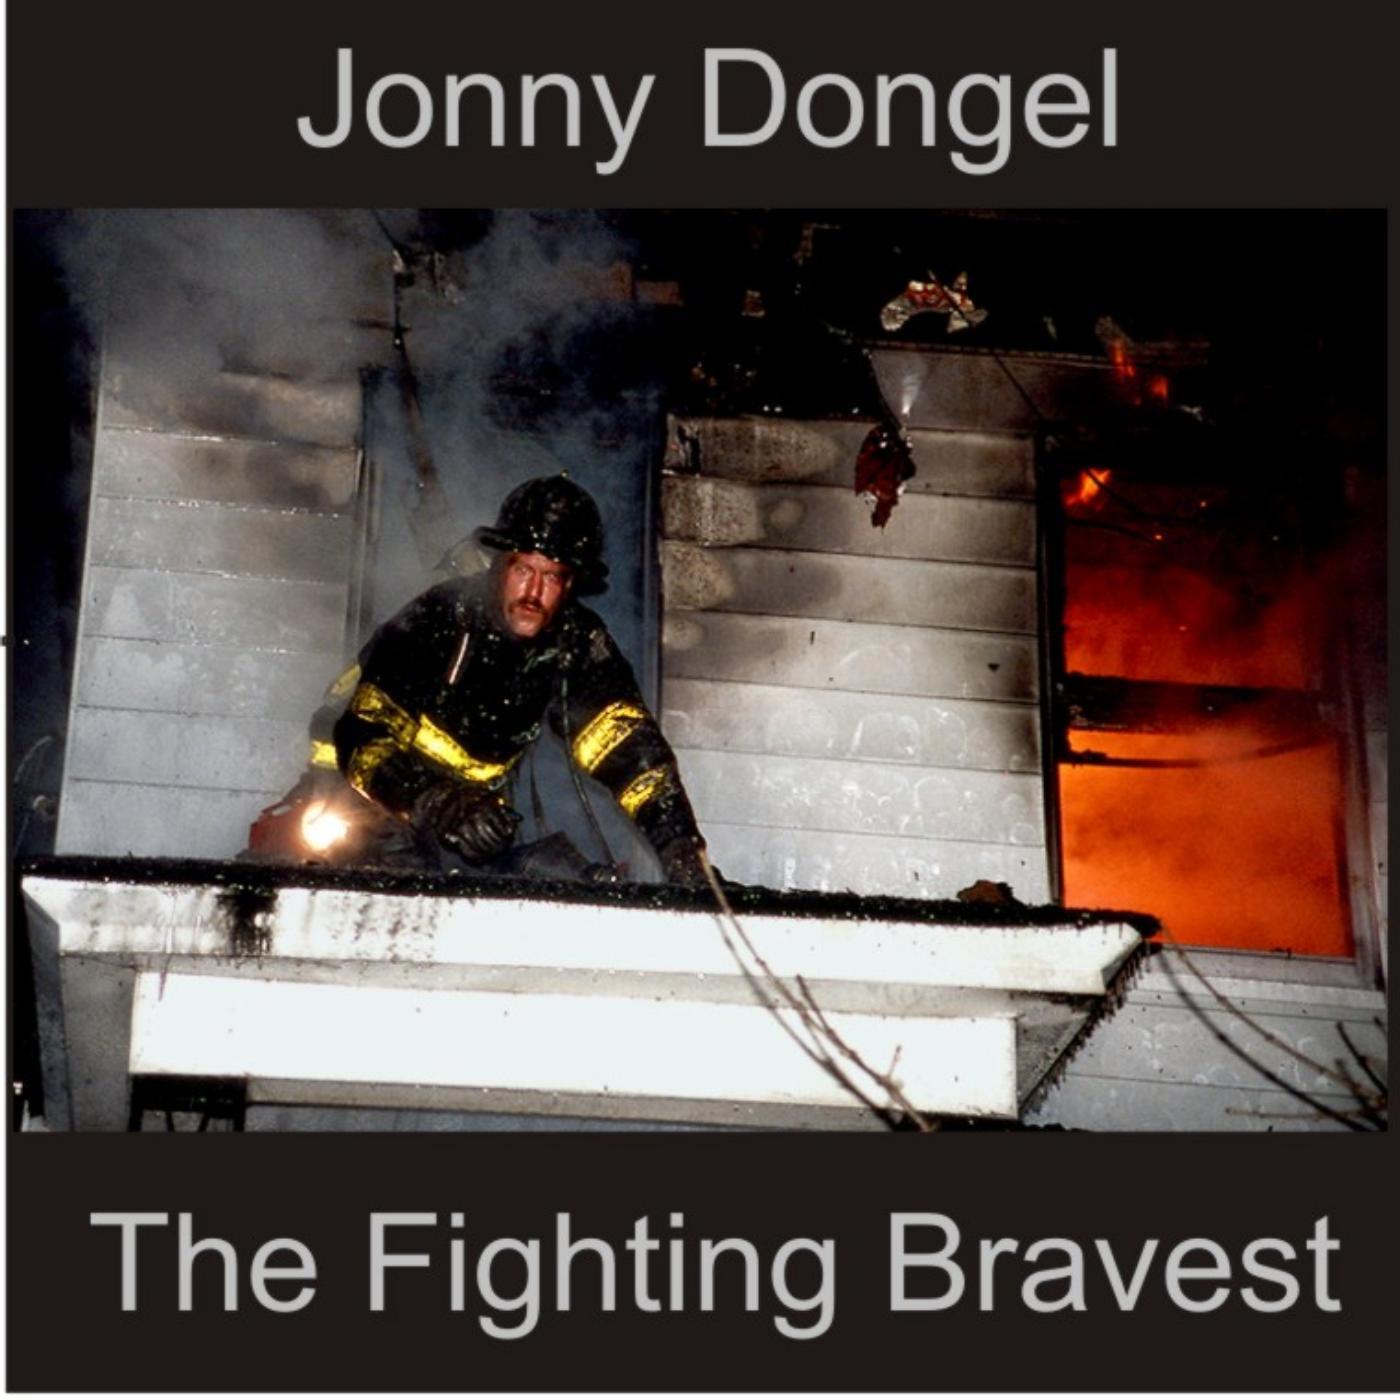 The Fighting Bravest